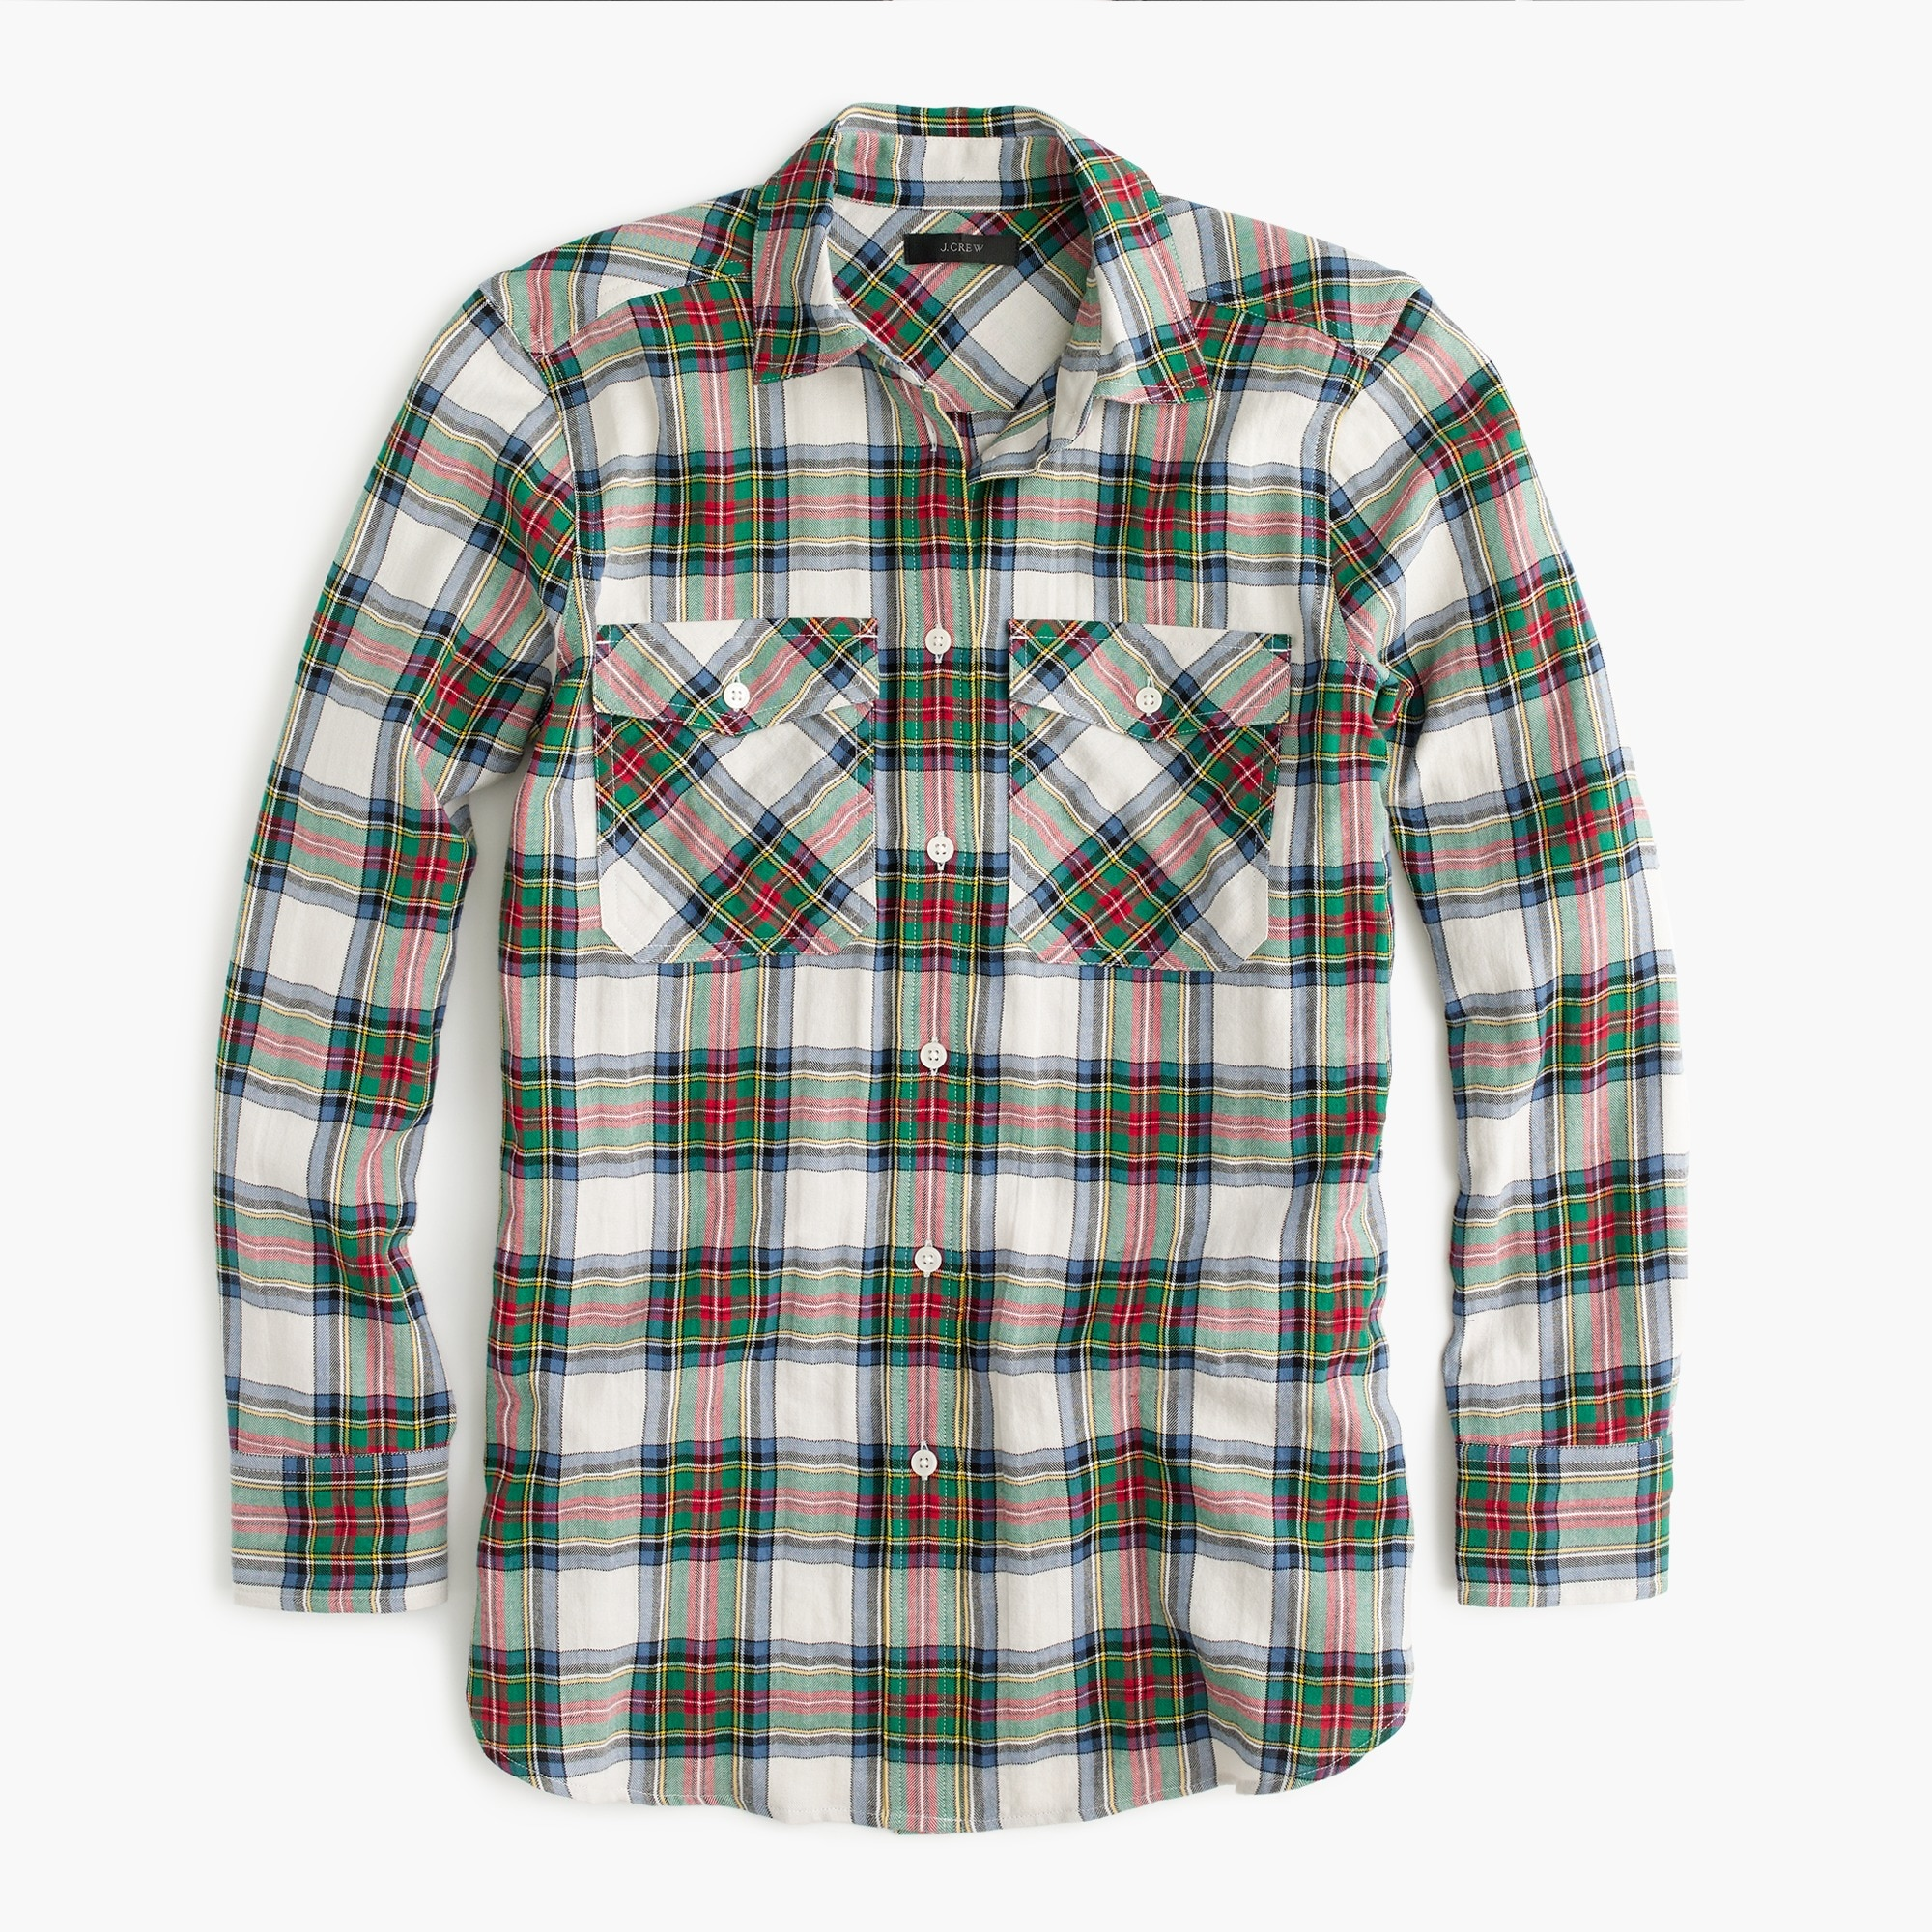 Tall boyfriend shirt in stewart plaid